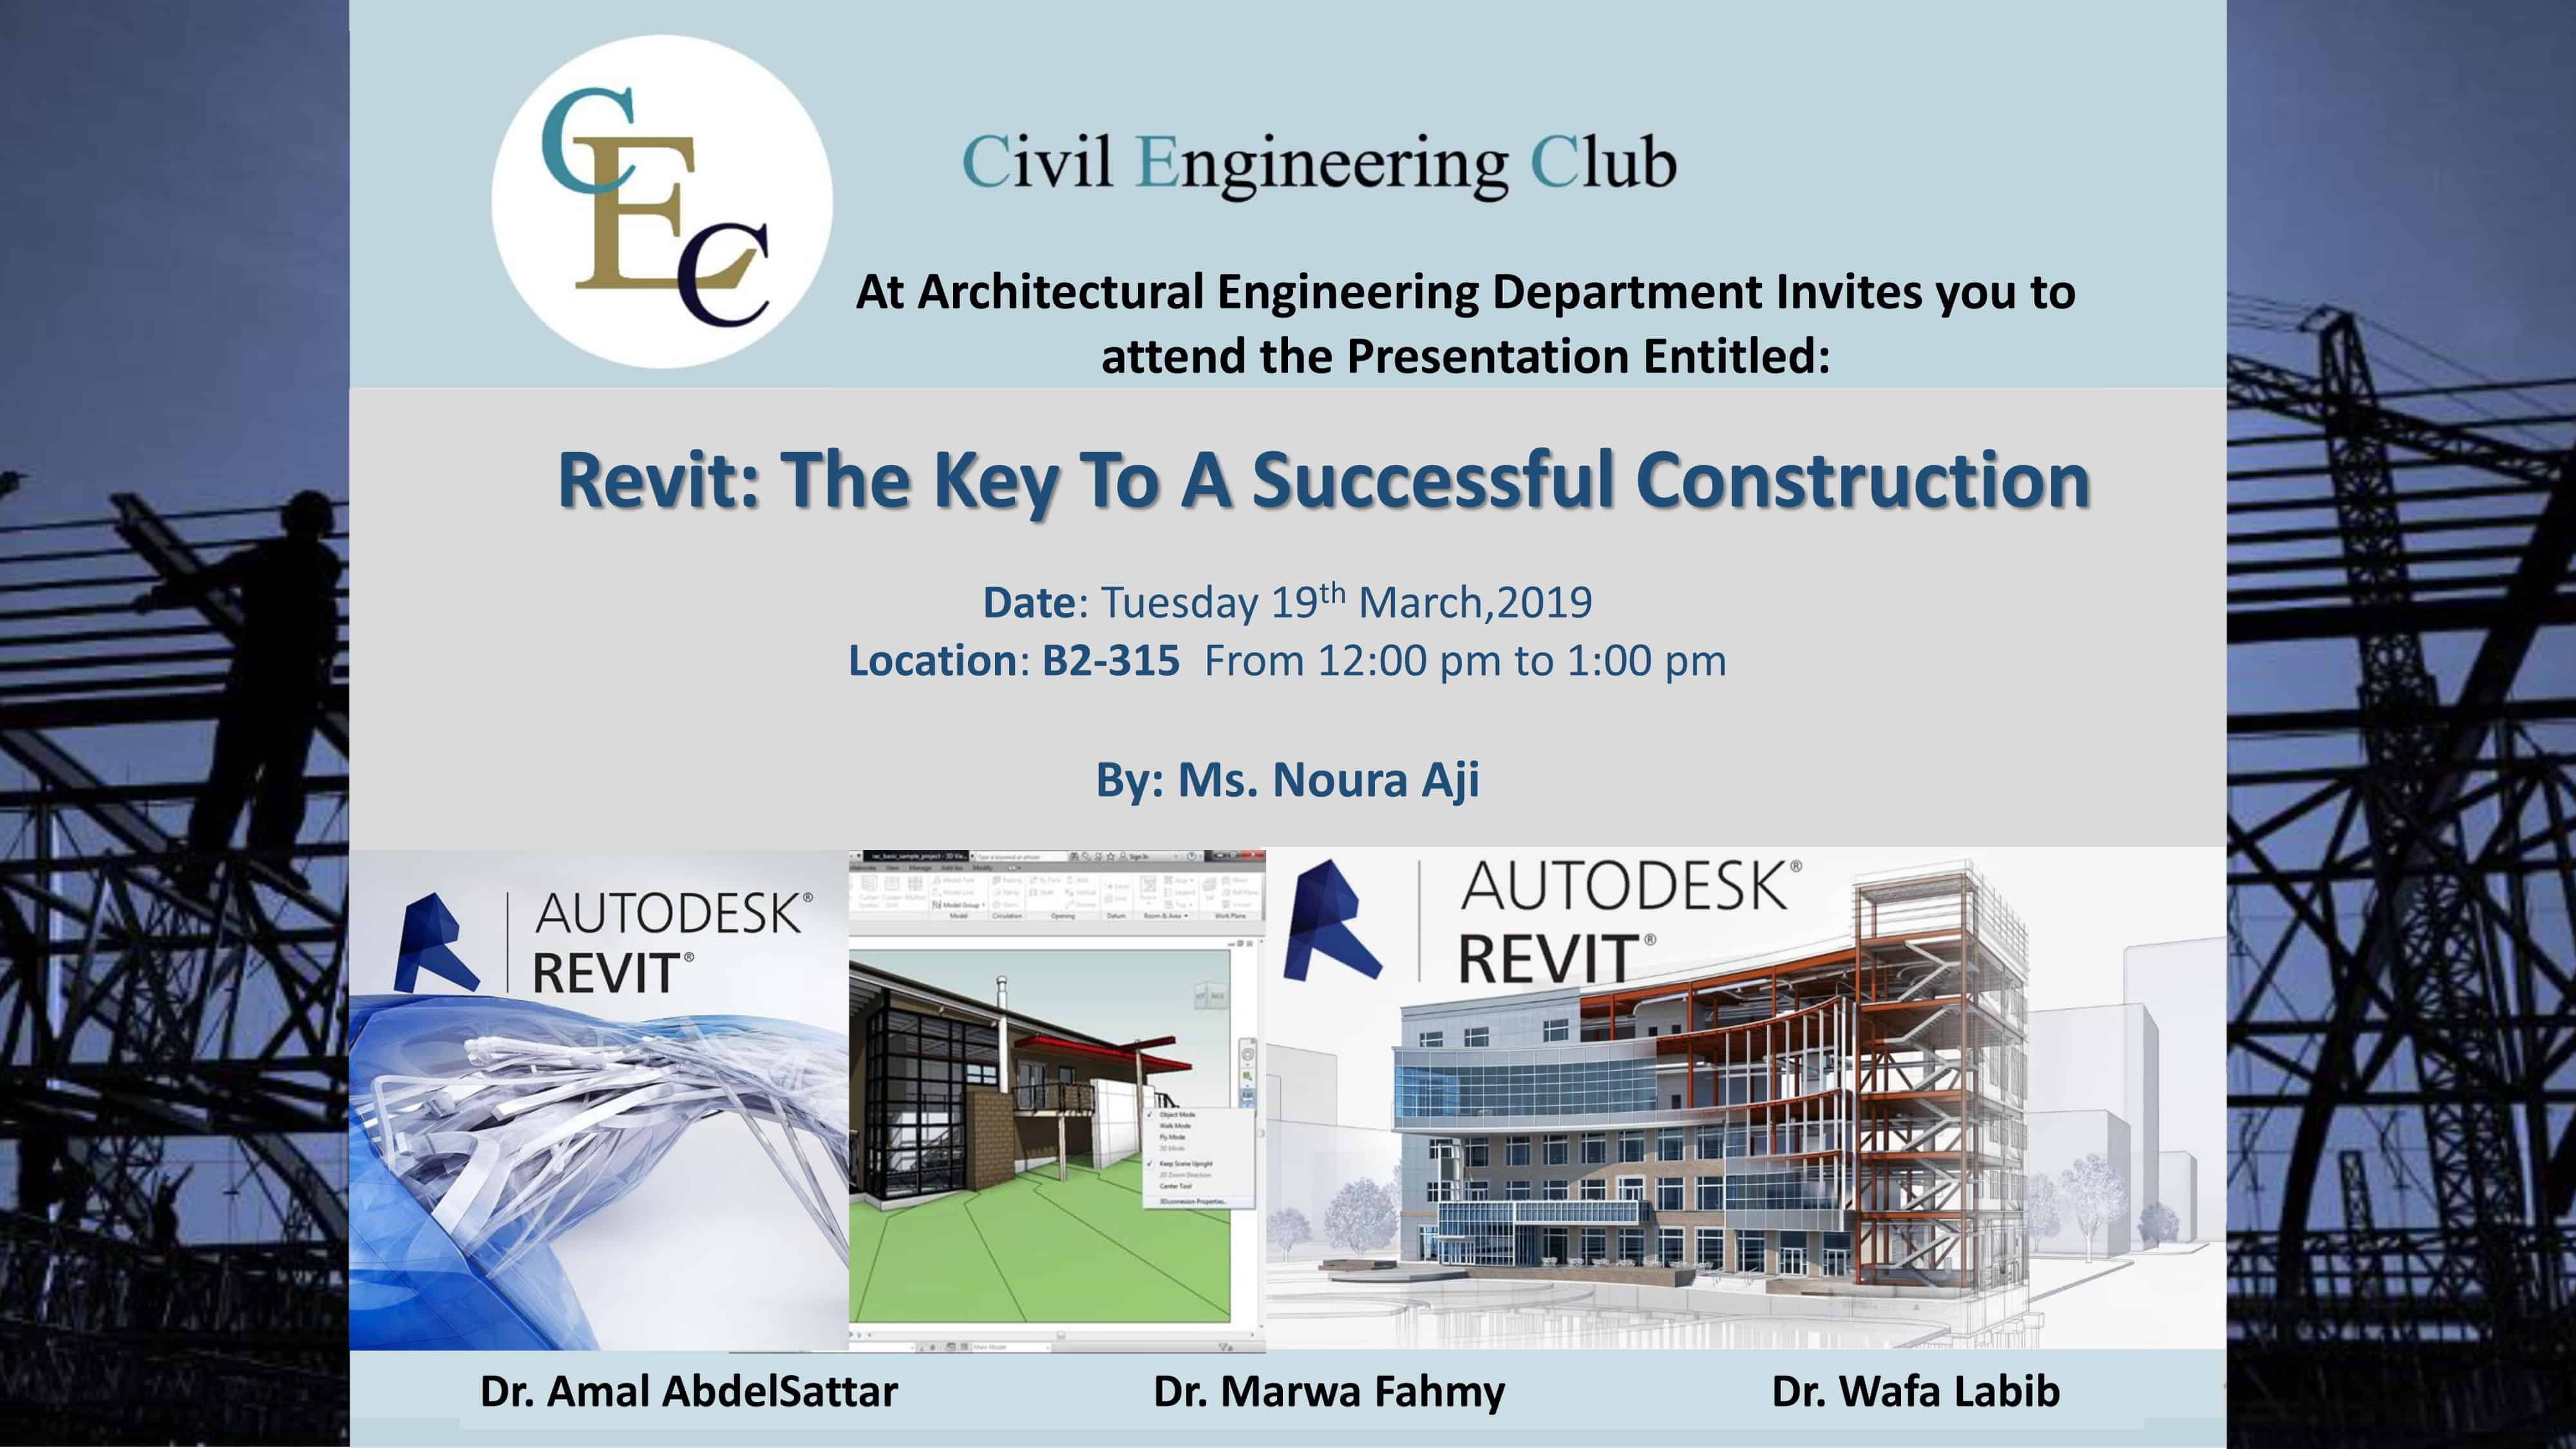 The key to successful construction